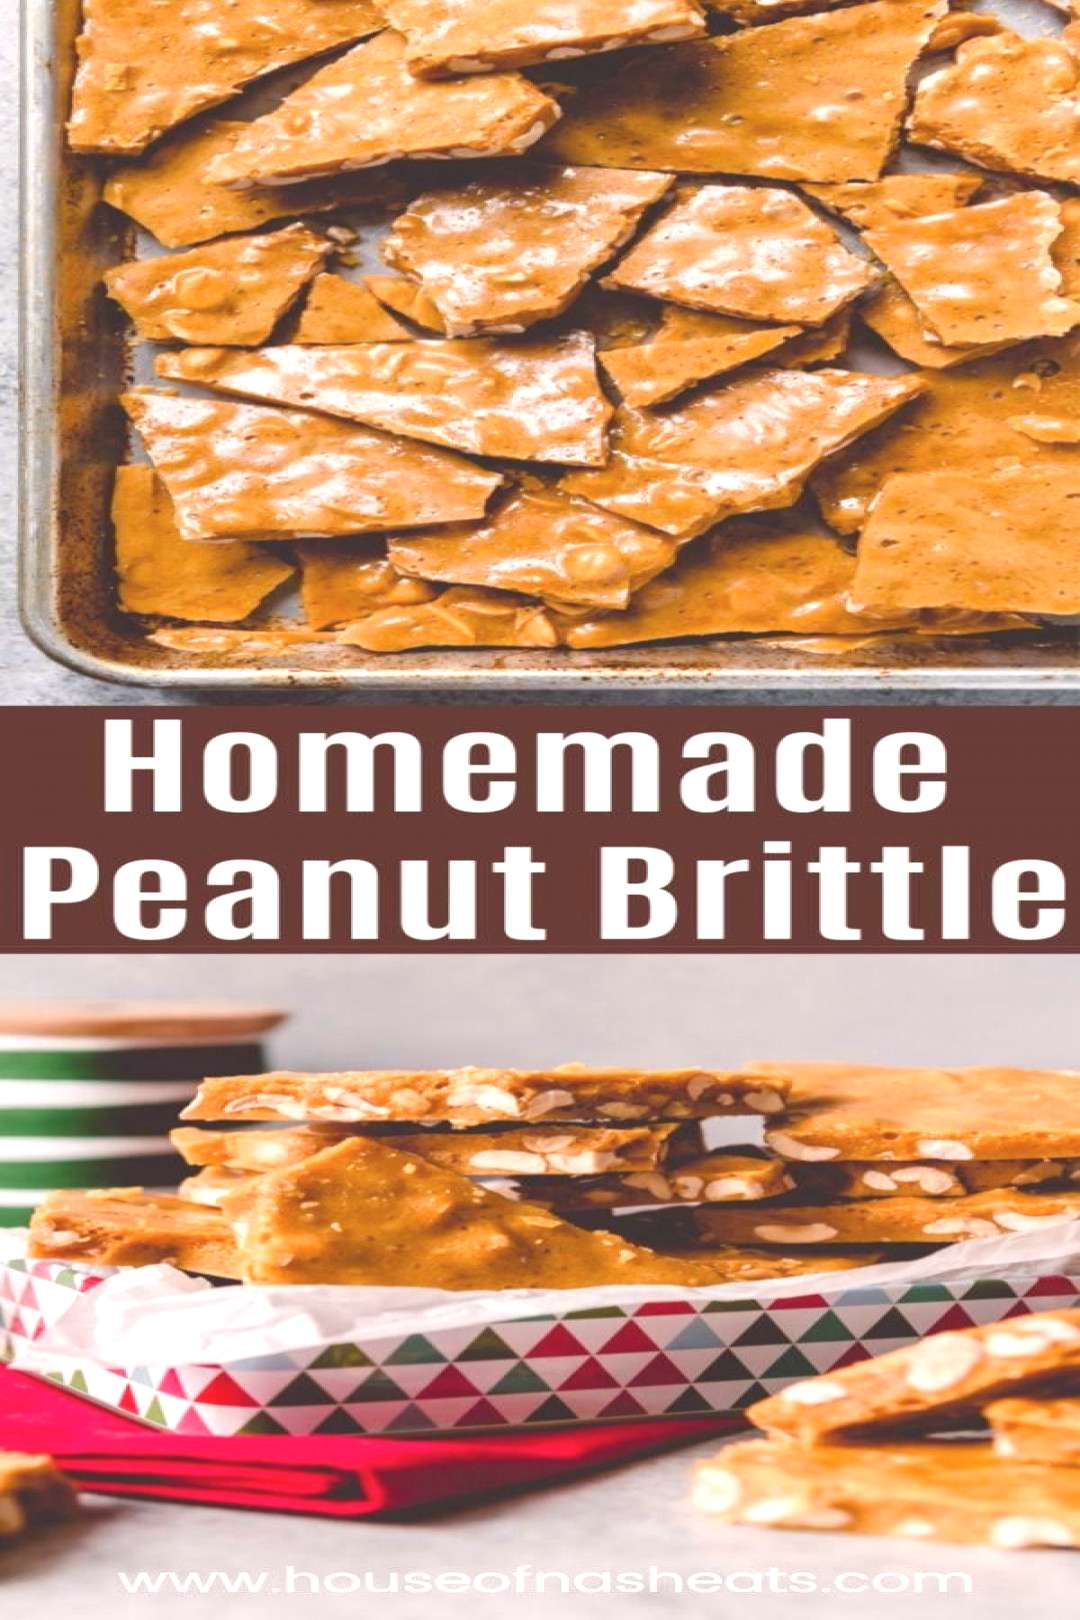 Old-Fashioned Homemade Peanut Brittle is a crispy, crunchy homemade candy loaded wit